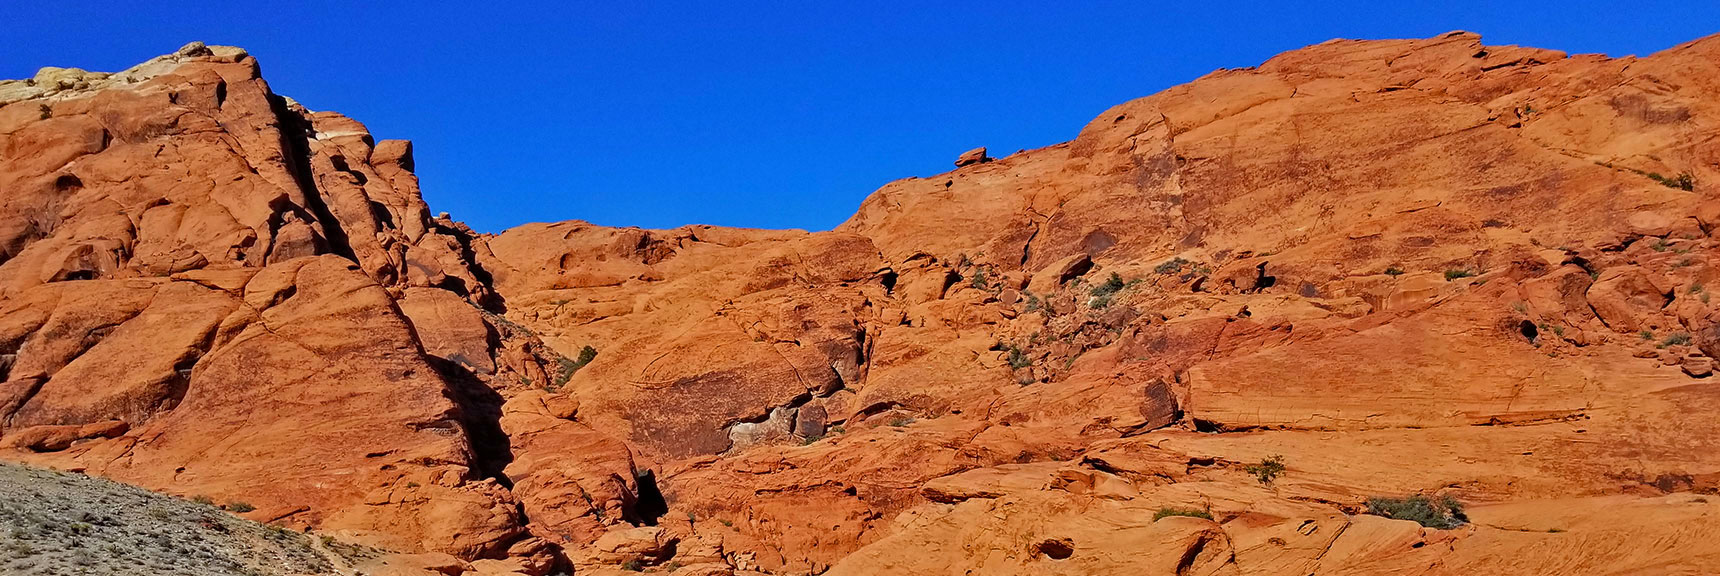 Red Rock National Park View of Calico Hills from 2nd Scenic Drive Turnout